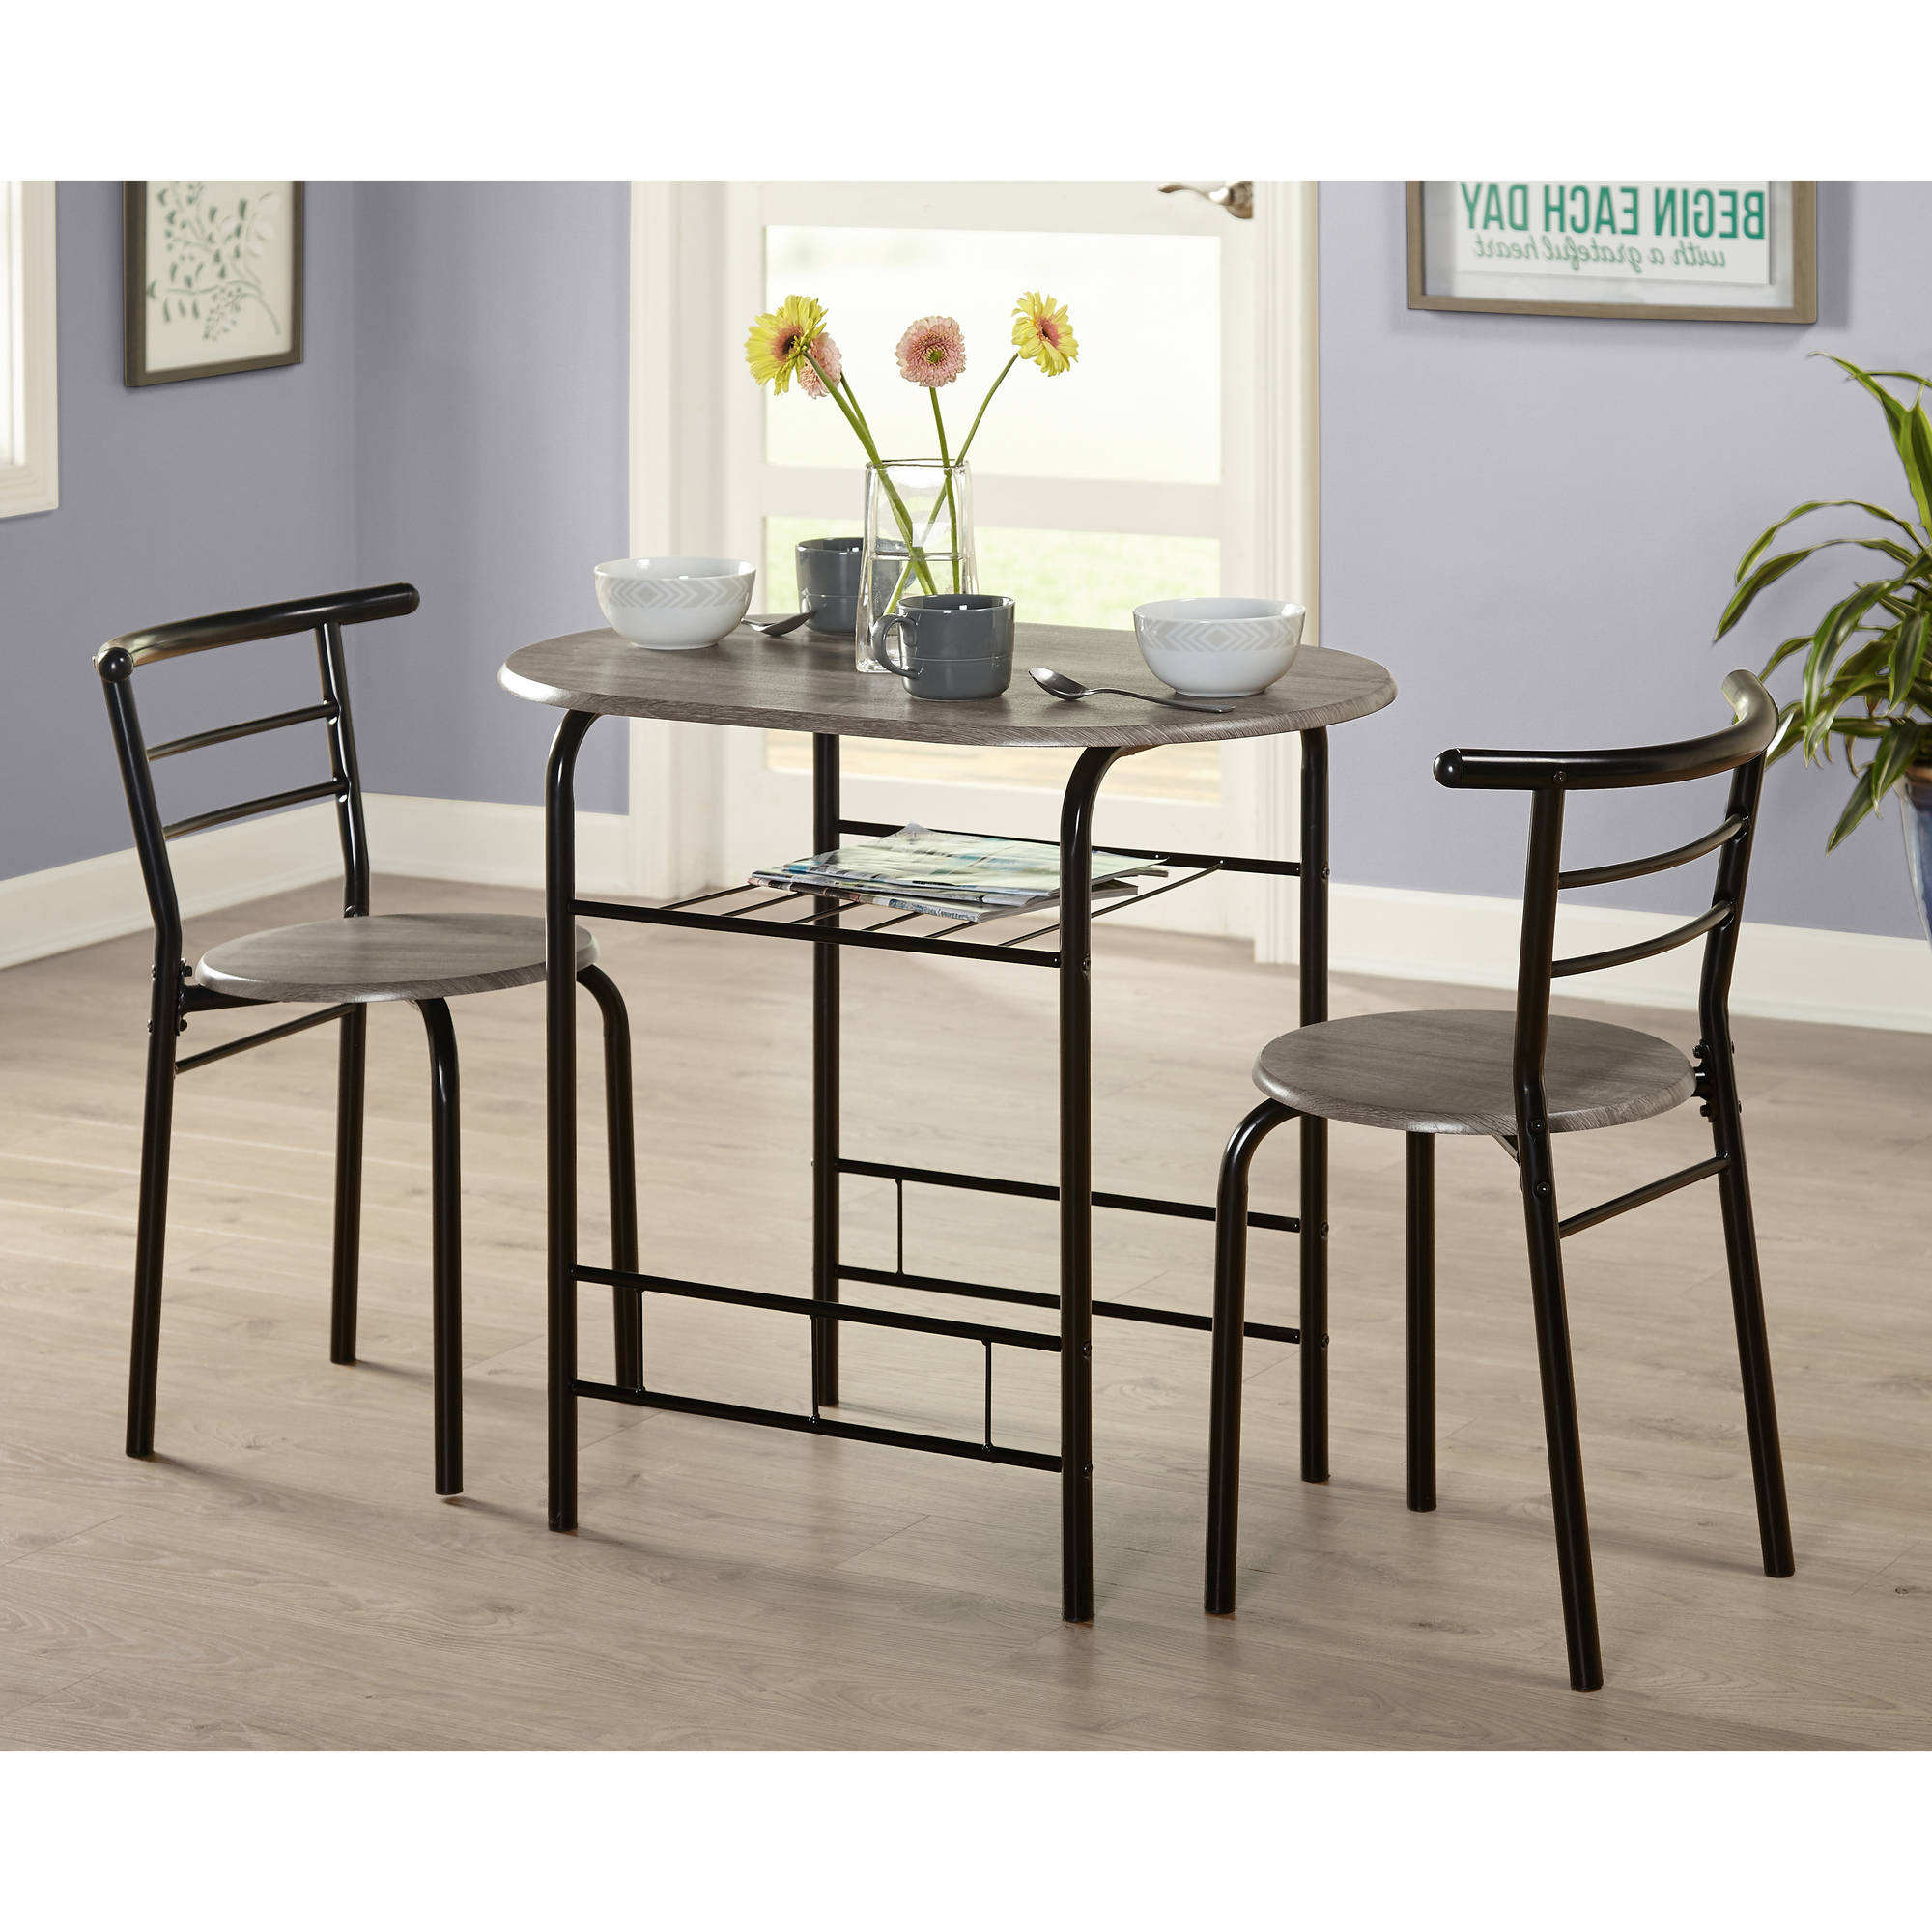 Latest Tms 3 Piece Bistro Dining Set – Walmart In Bate Red Retro 3 Piece Dining Sets (View 6 of 25)